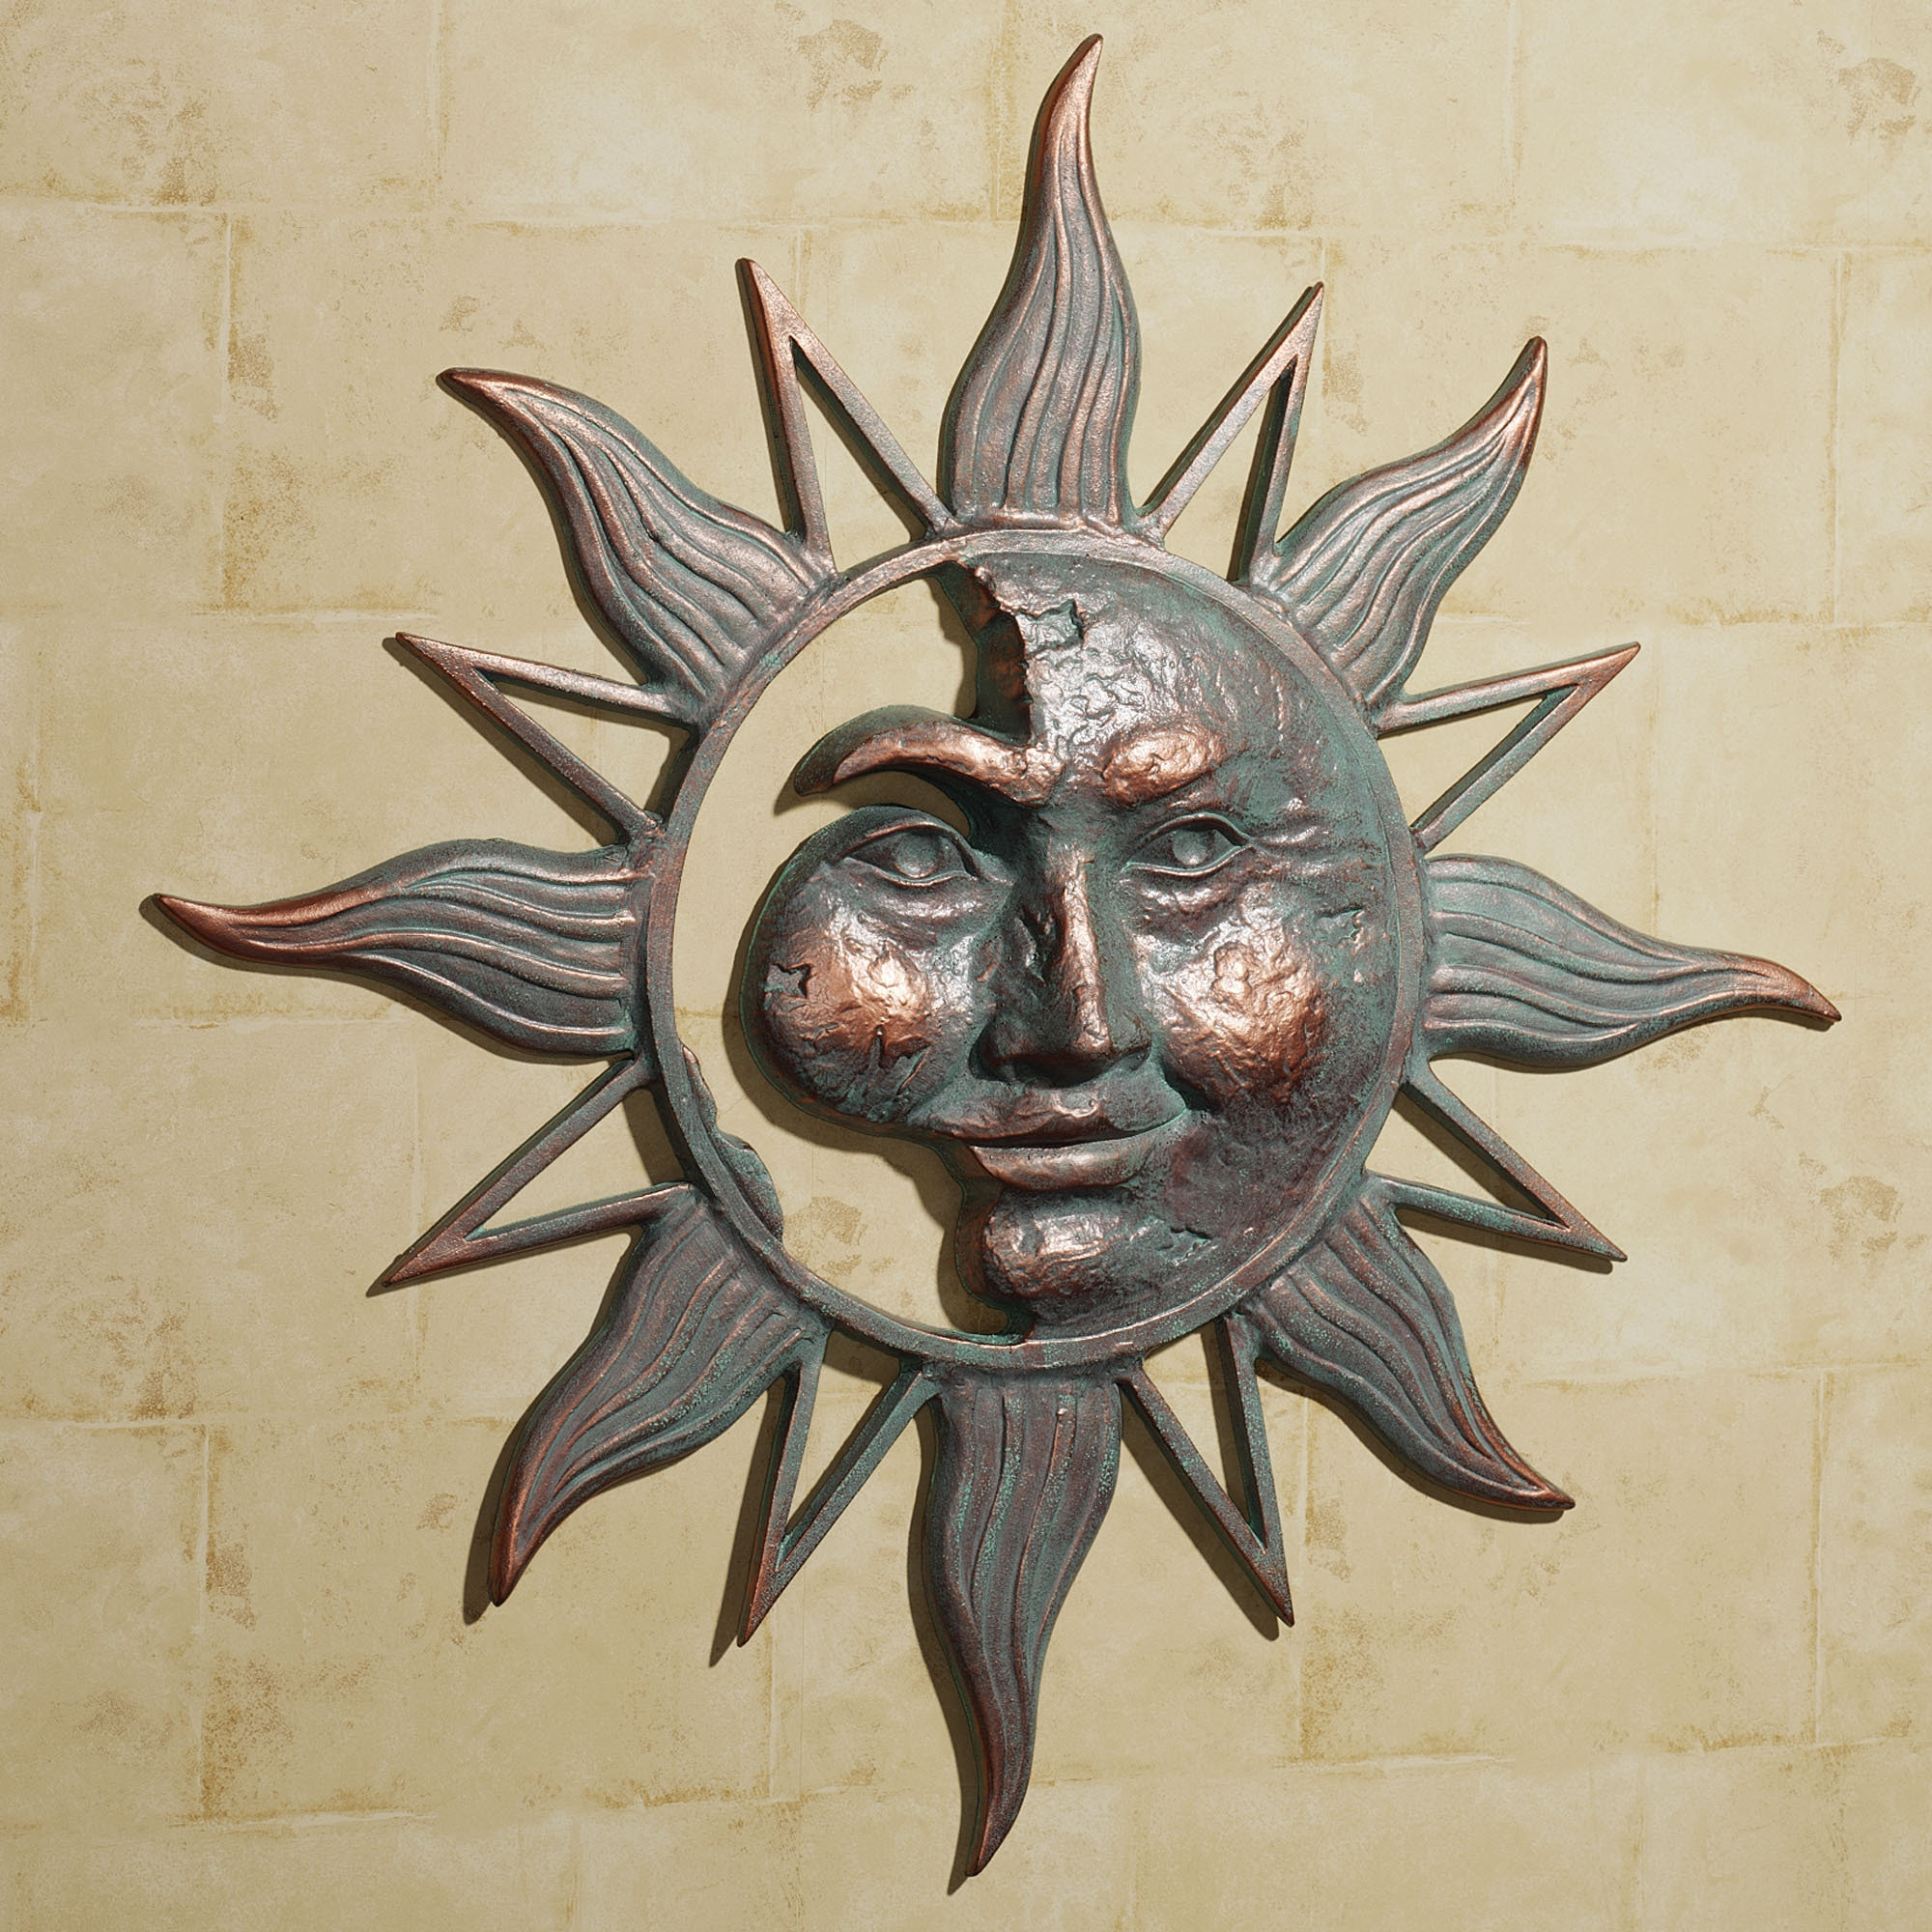 Nature Metal Sun Wall Decor Pertaining To 2019 Copper Sun Face Wall Decor (View 13 of 20)